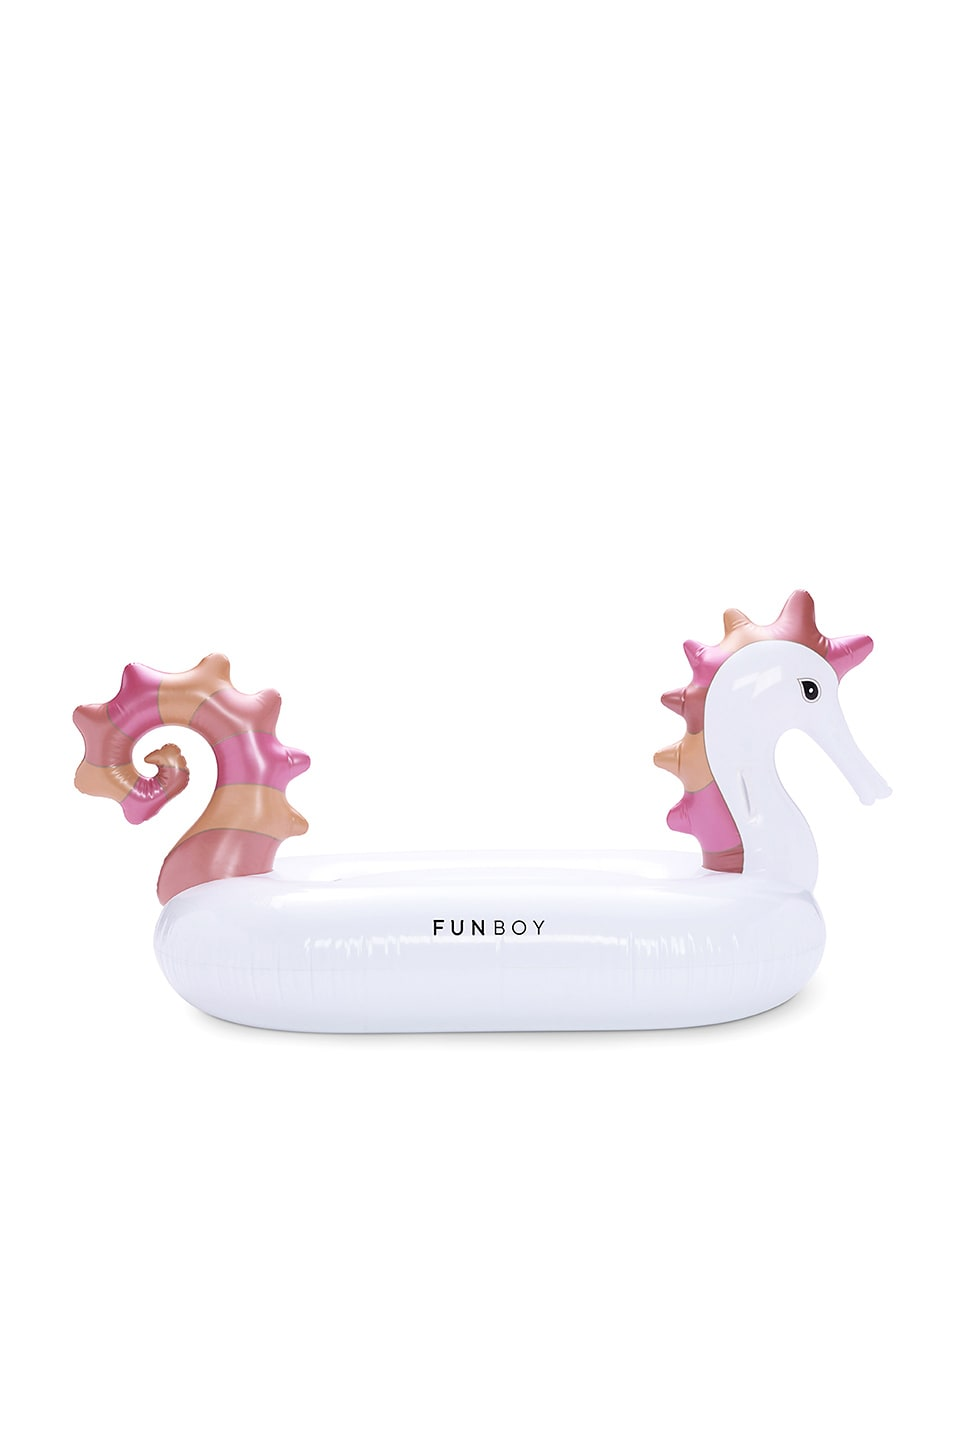 Seahorse Inflatable Pool Float